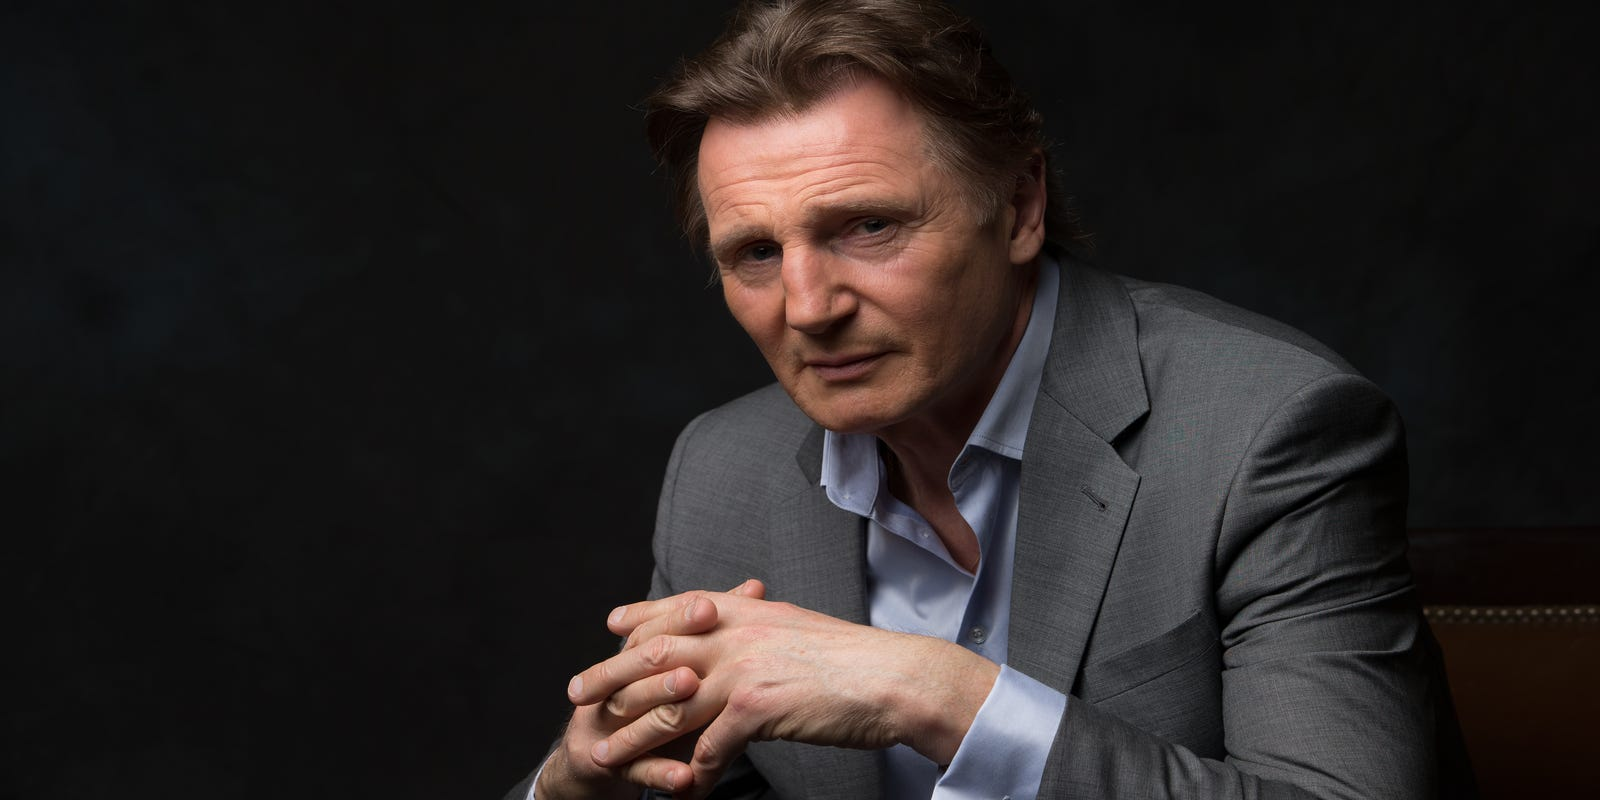 Liam Neeson puts up a good fight as 'Non-Stop' action hero